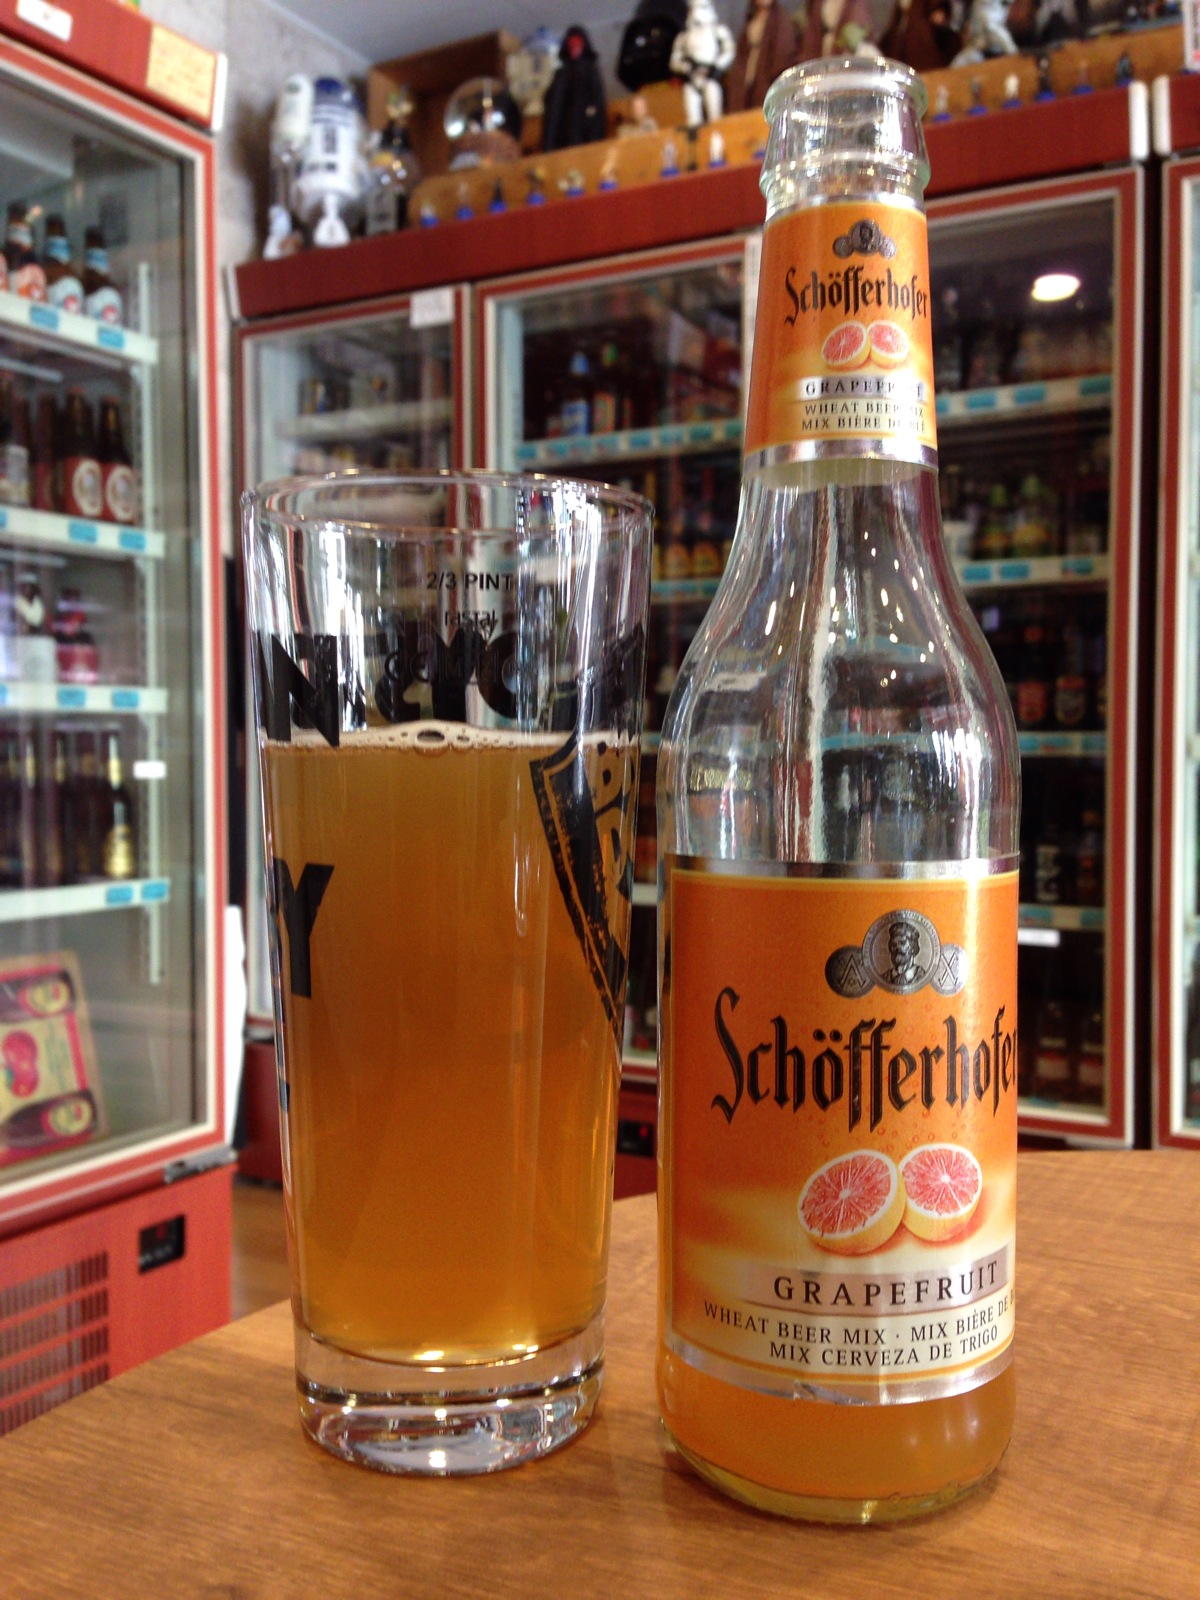 Schöfferhofer「Grapefruit」(...